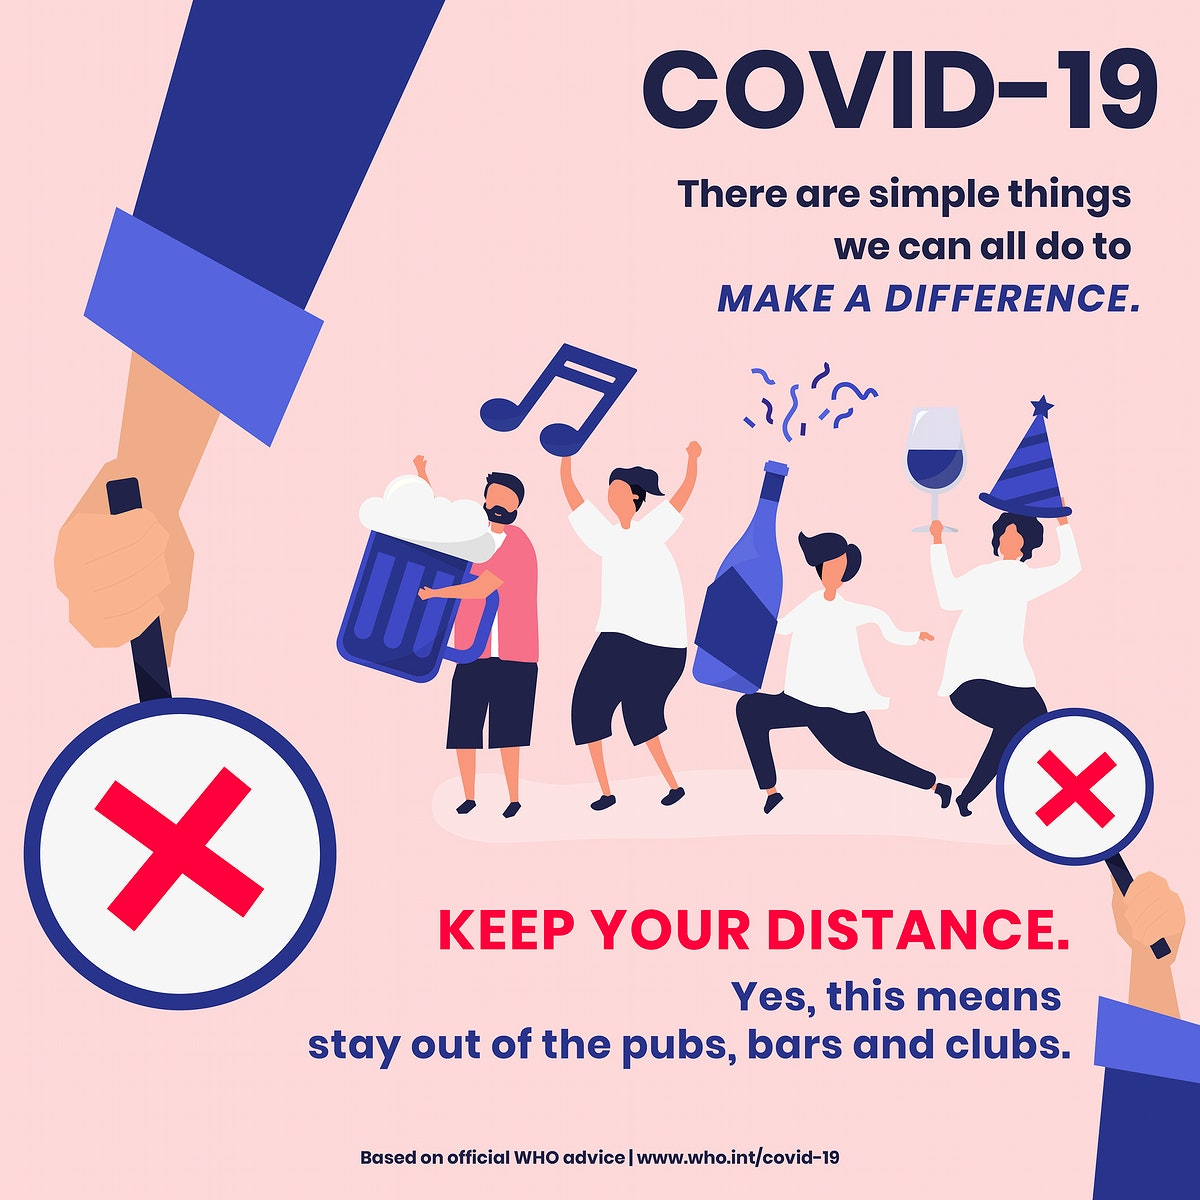 Keep your distance during coronavirus outbreak social template source WHO vector